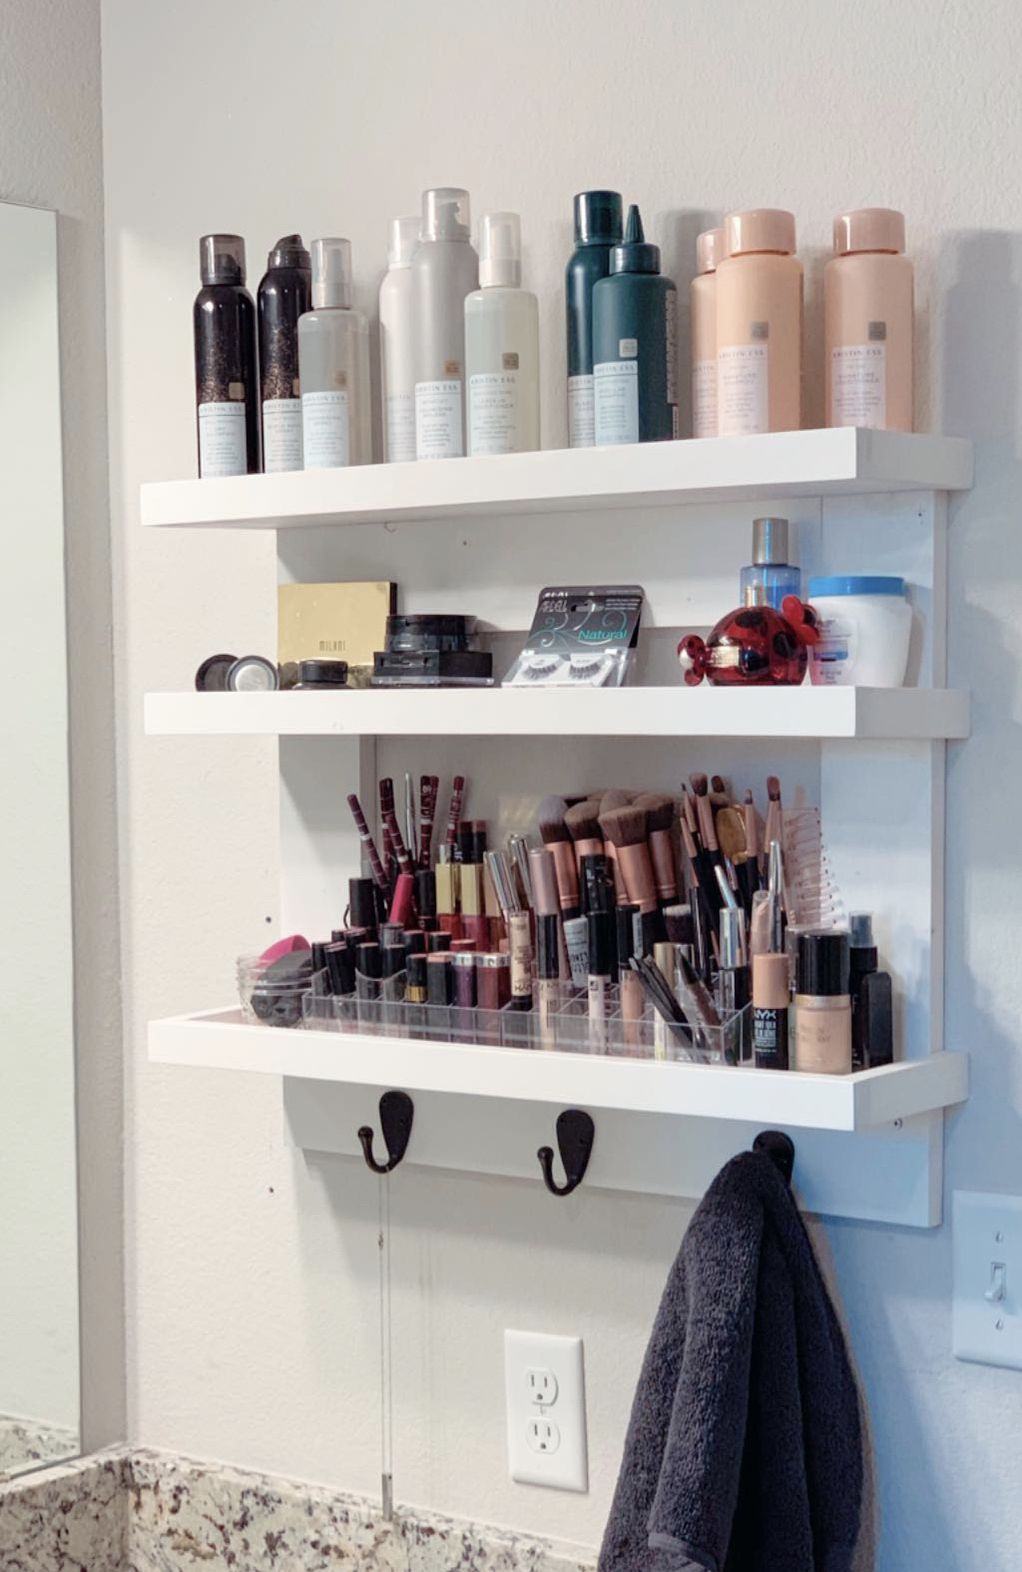 Diy Makeup Hair Care Wall Shelf And Shelving With Hooks Makes